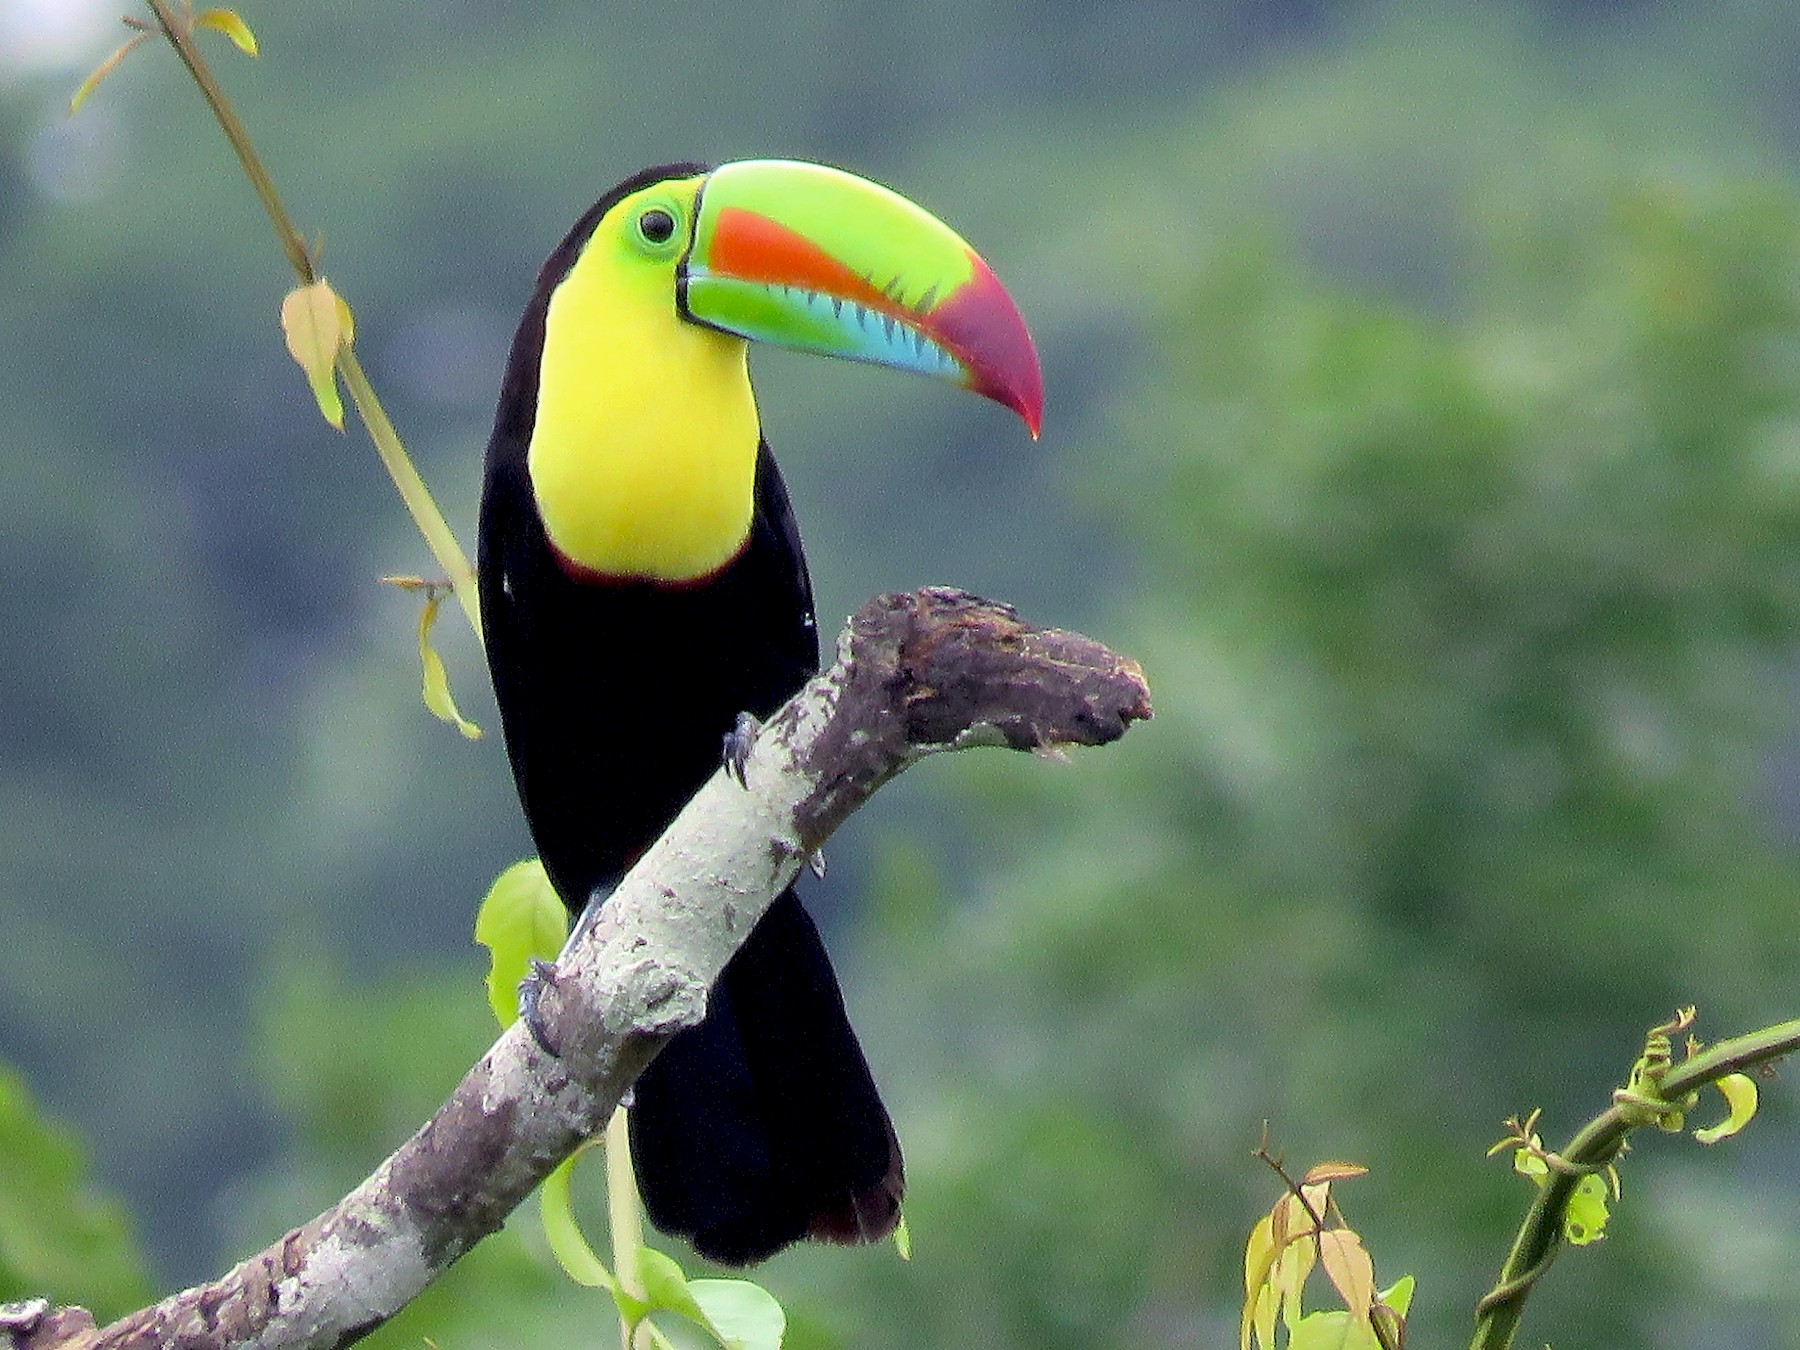 Keel-billed Toucan - Rolando Jordan